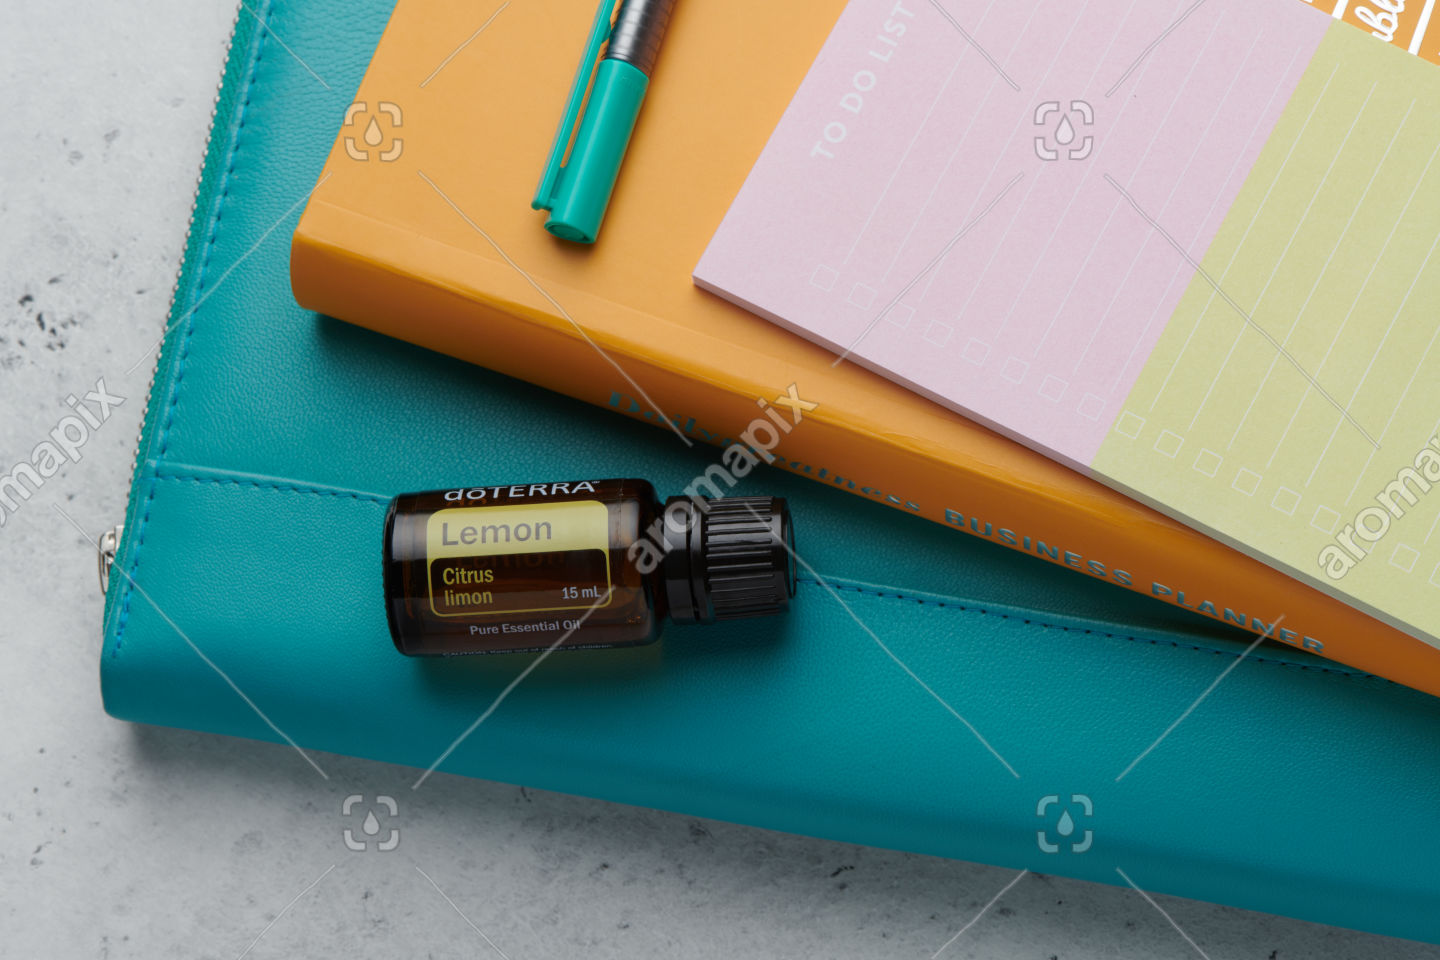 doTERRA Lemon product with business tools